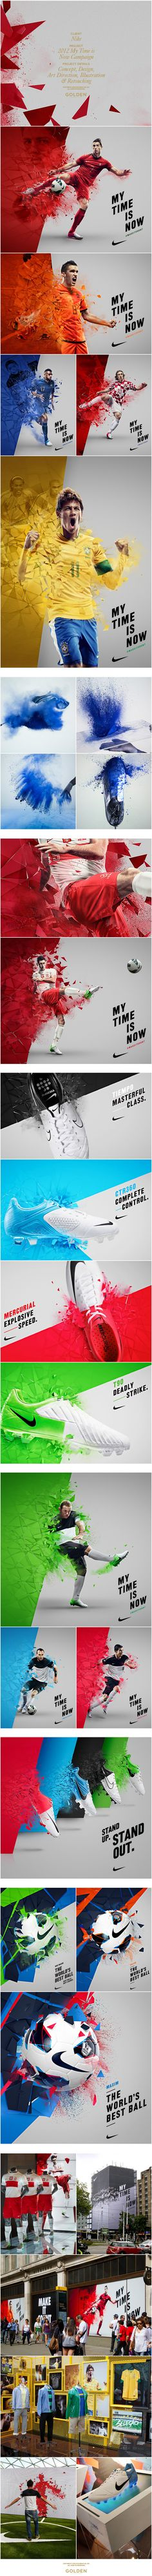 Nike 2012 My Time Is Now Campaign   Concept, art direction and illustration by Golden. Photography by Dan Tobin-Smith. Player retouching by Happy Finish.